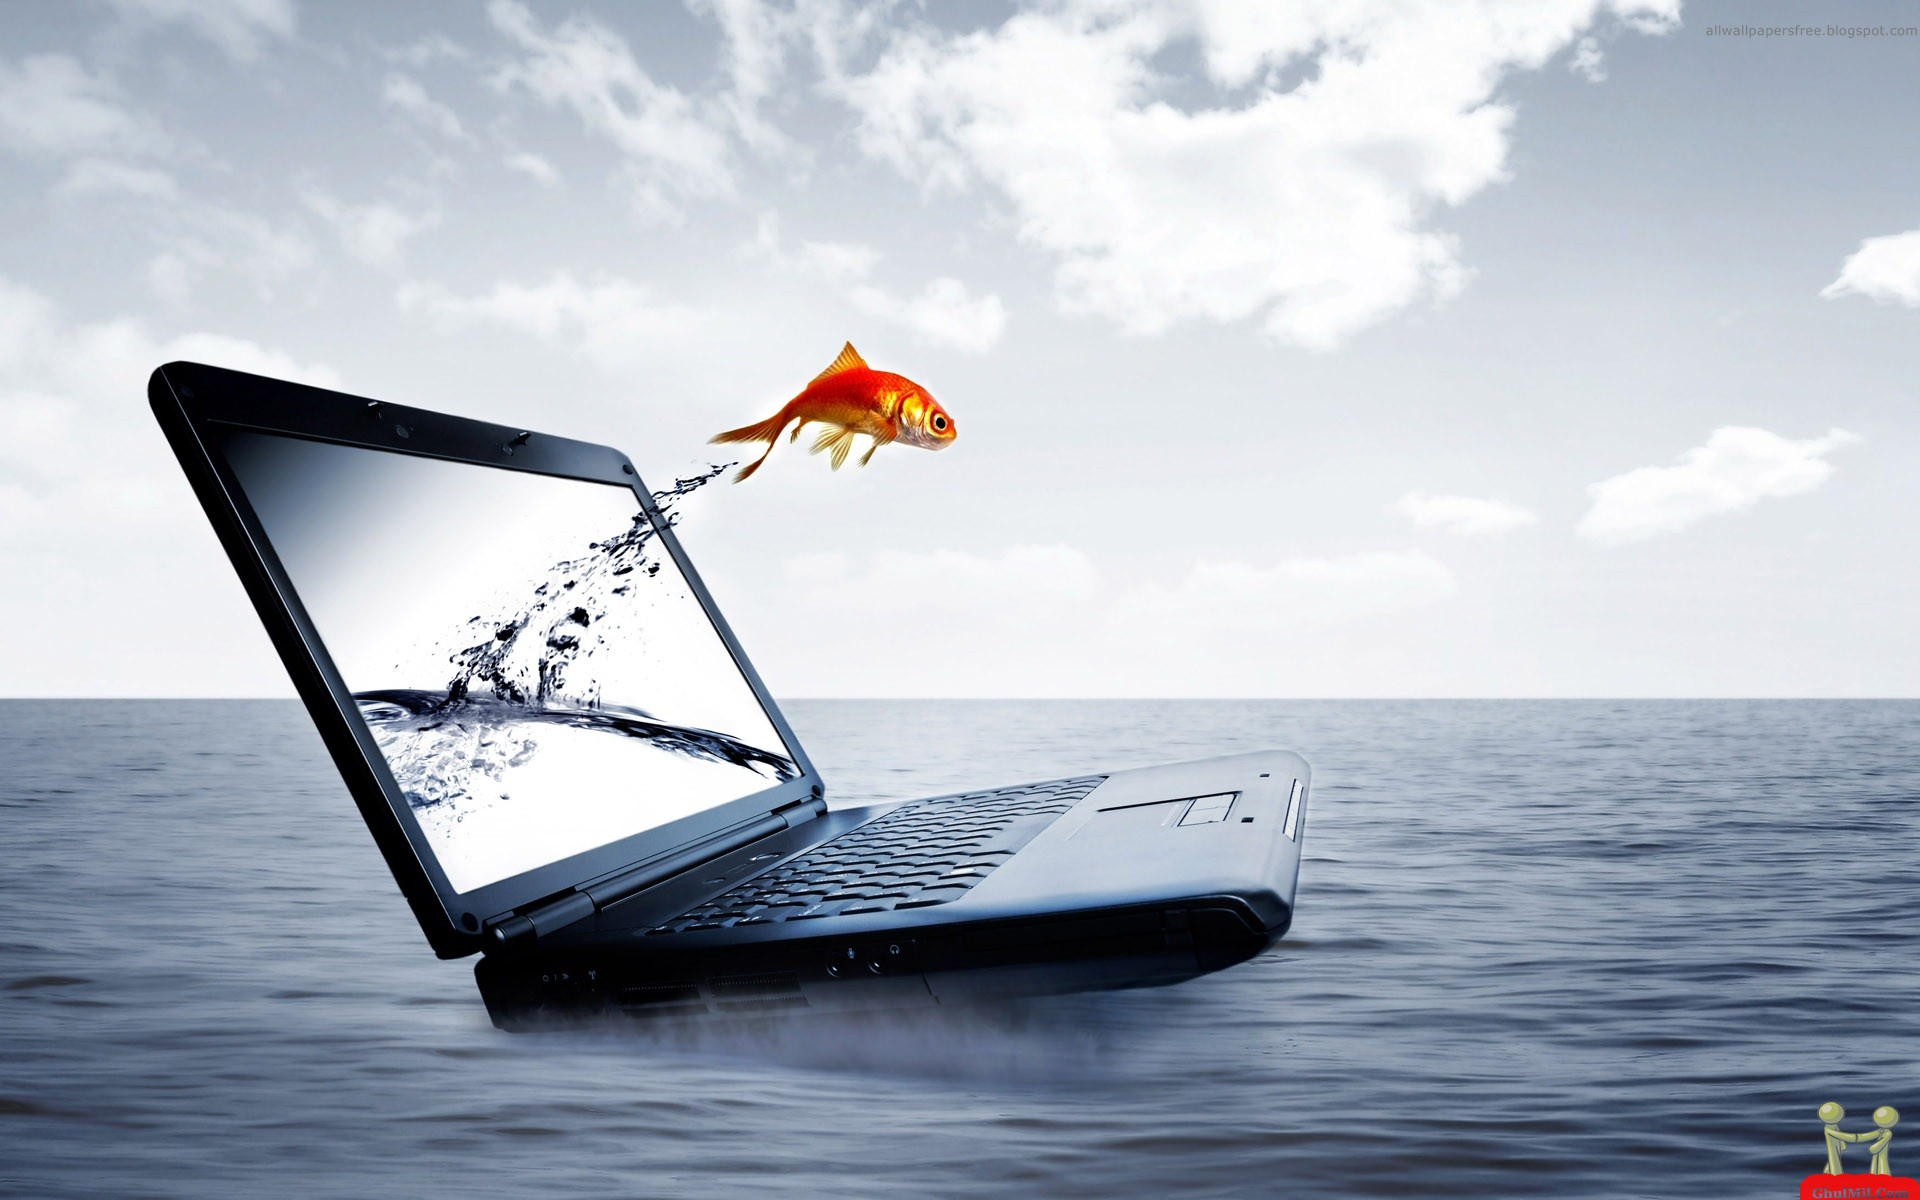 Wallpapers Dell Laptop Nature Cartoon Pictures Military Lagoon